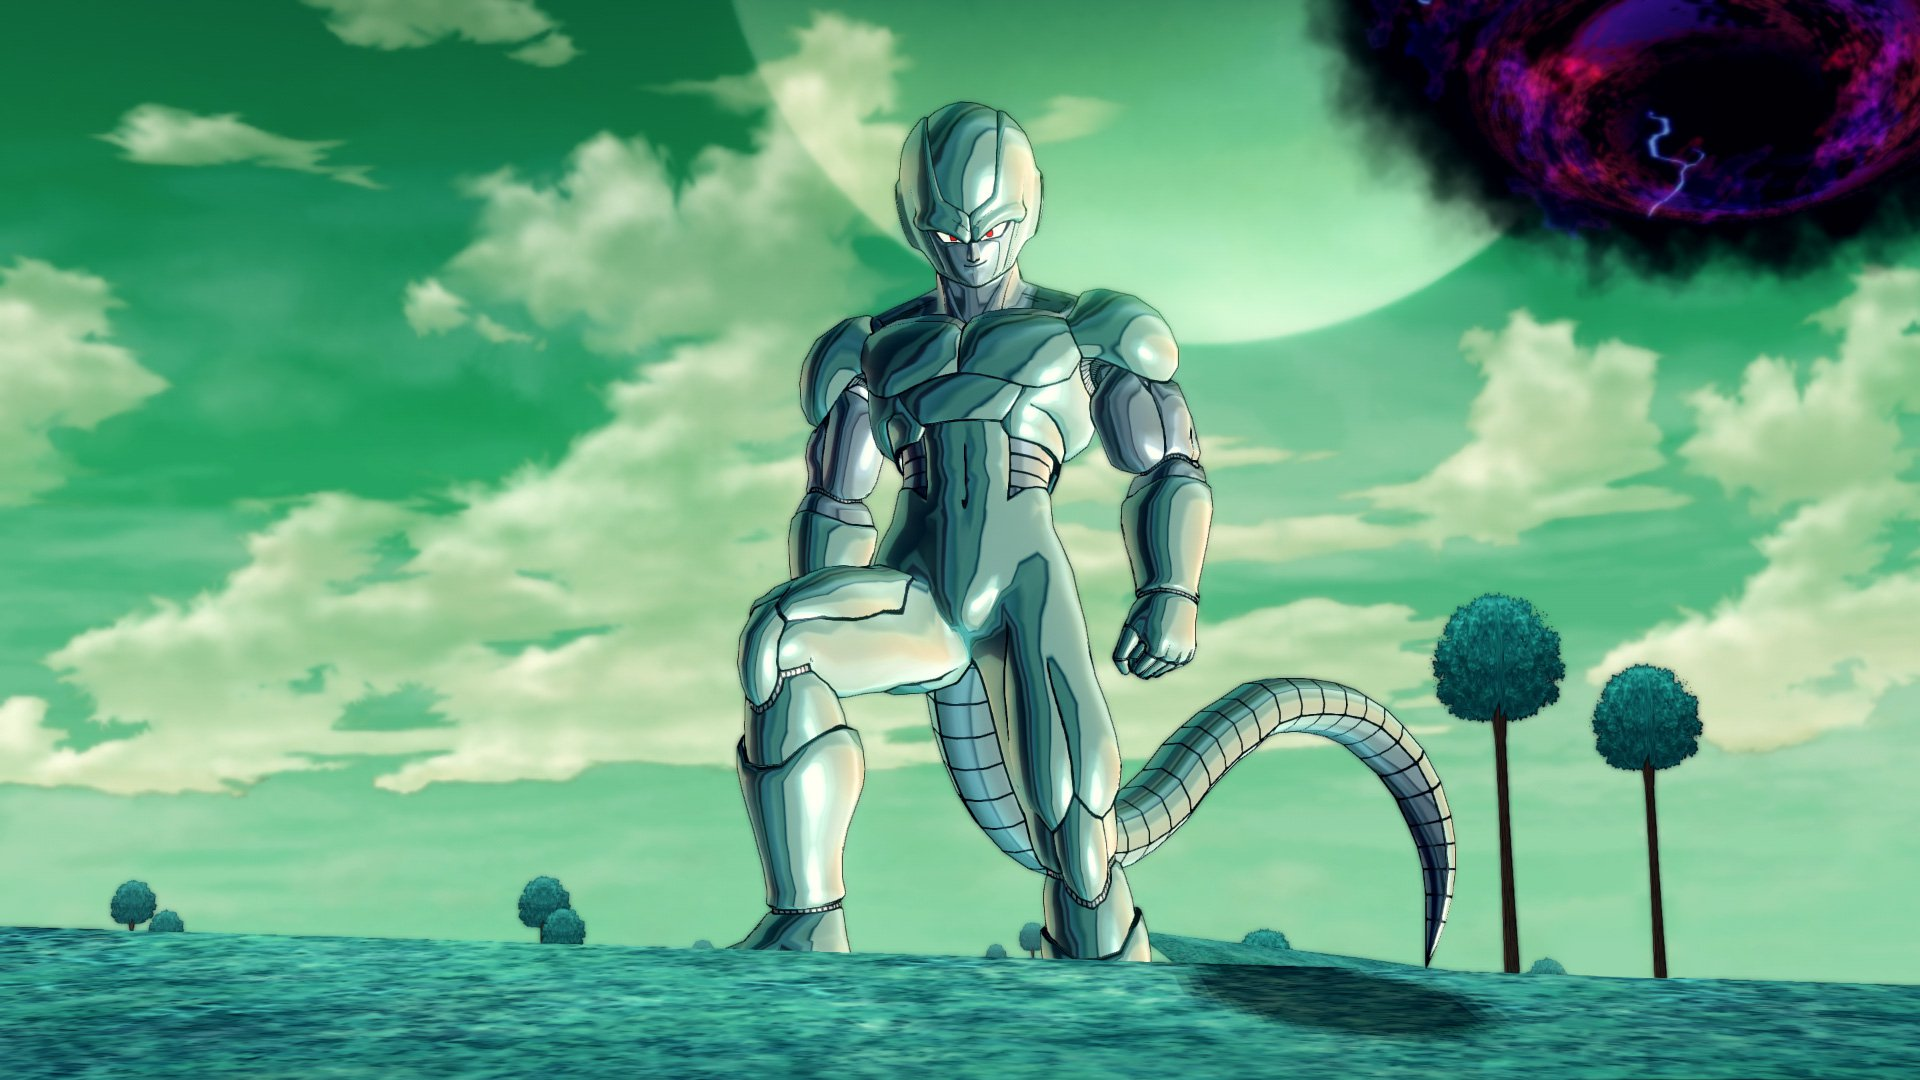 dragon-ball-xenoverse-2-cooler-story-screenshots-03